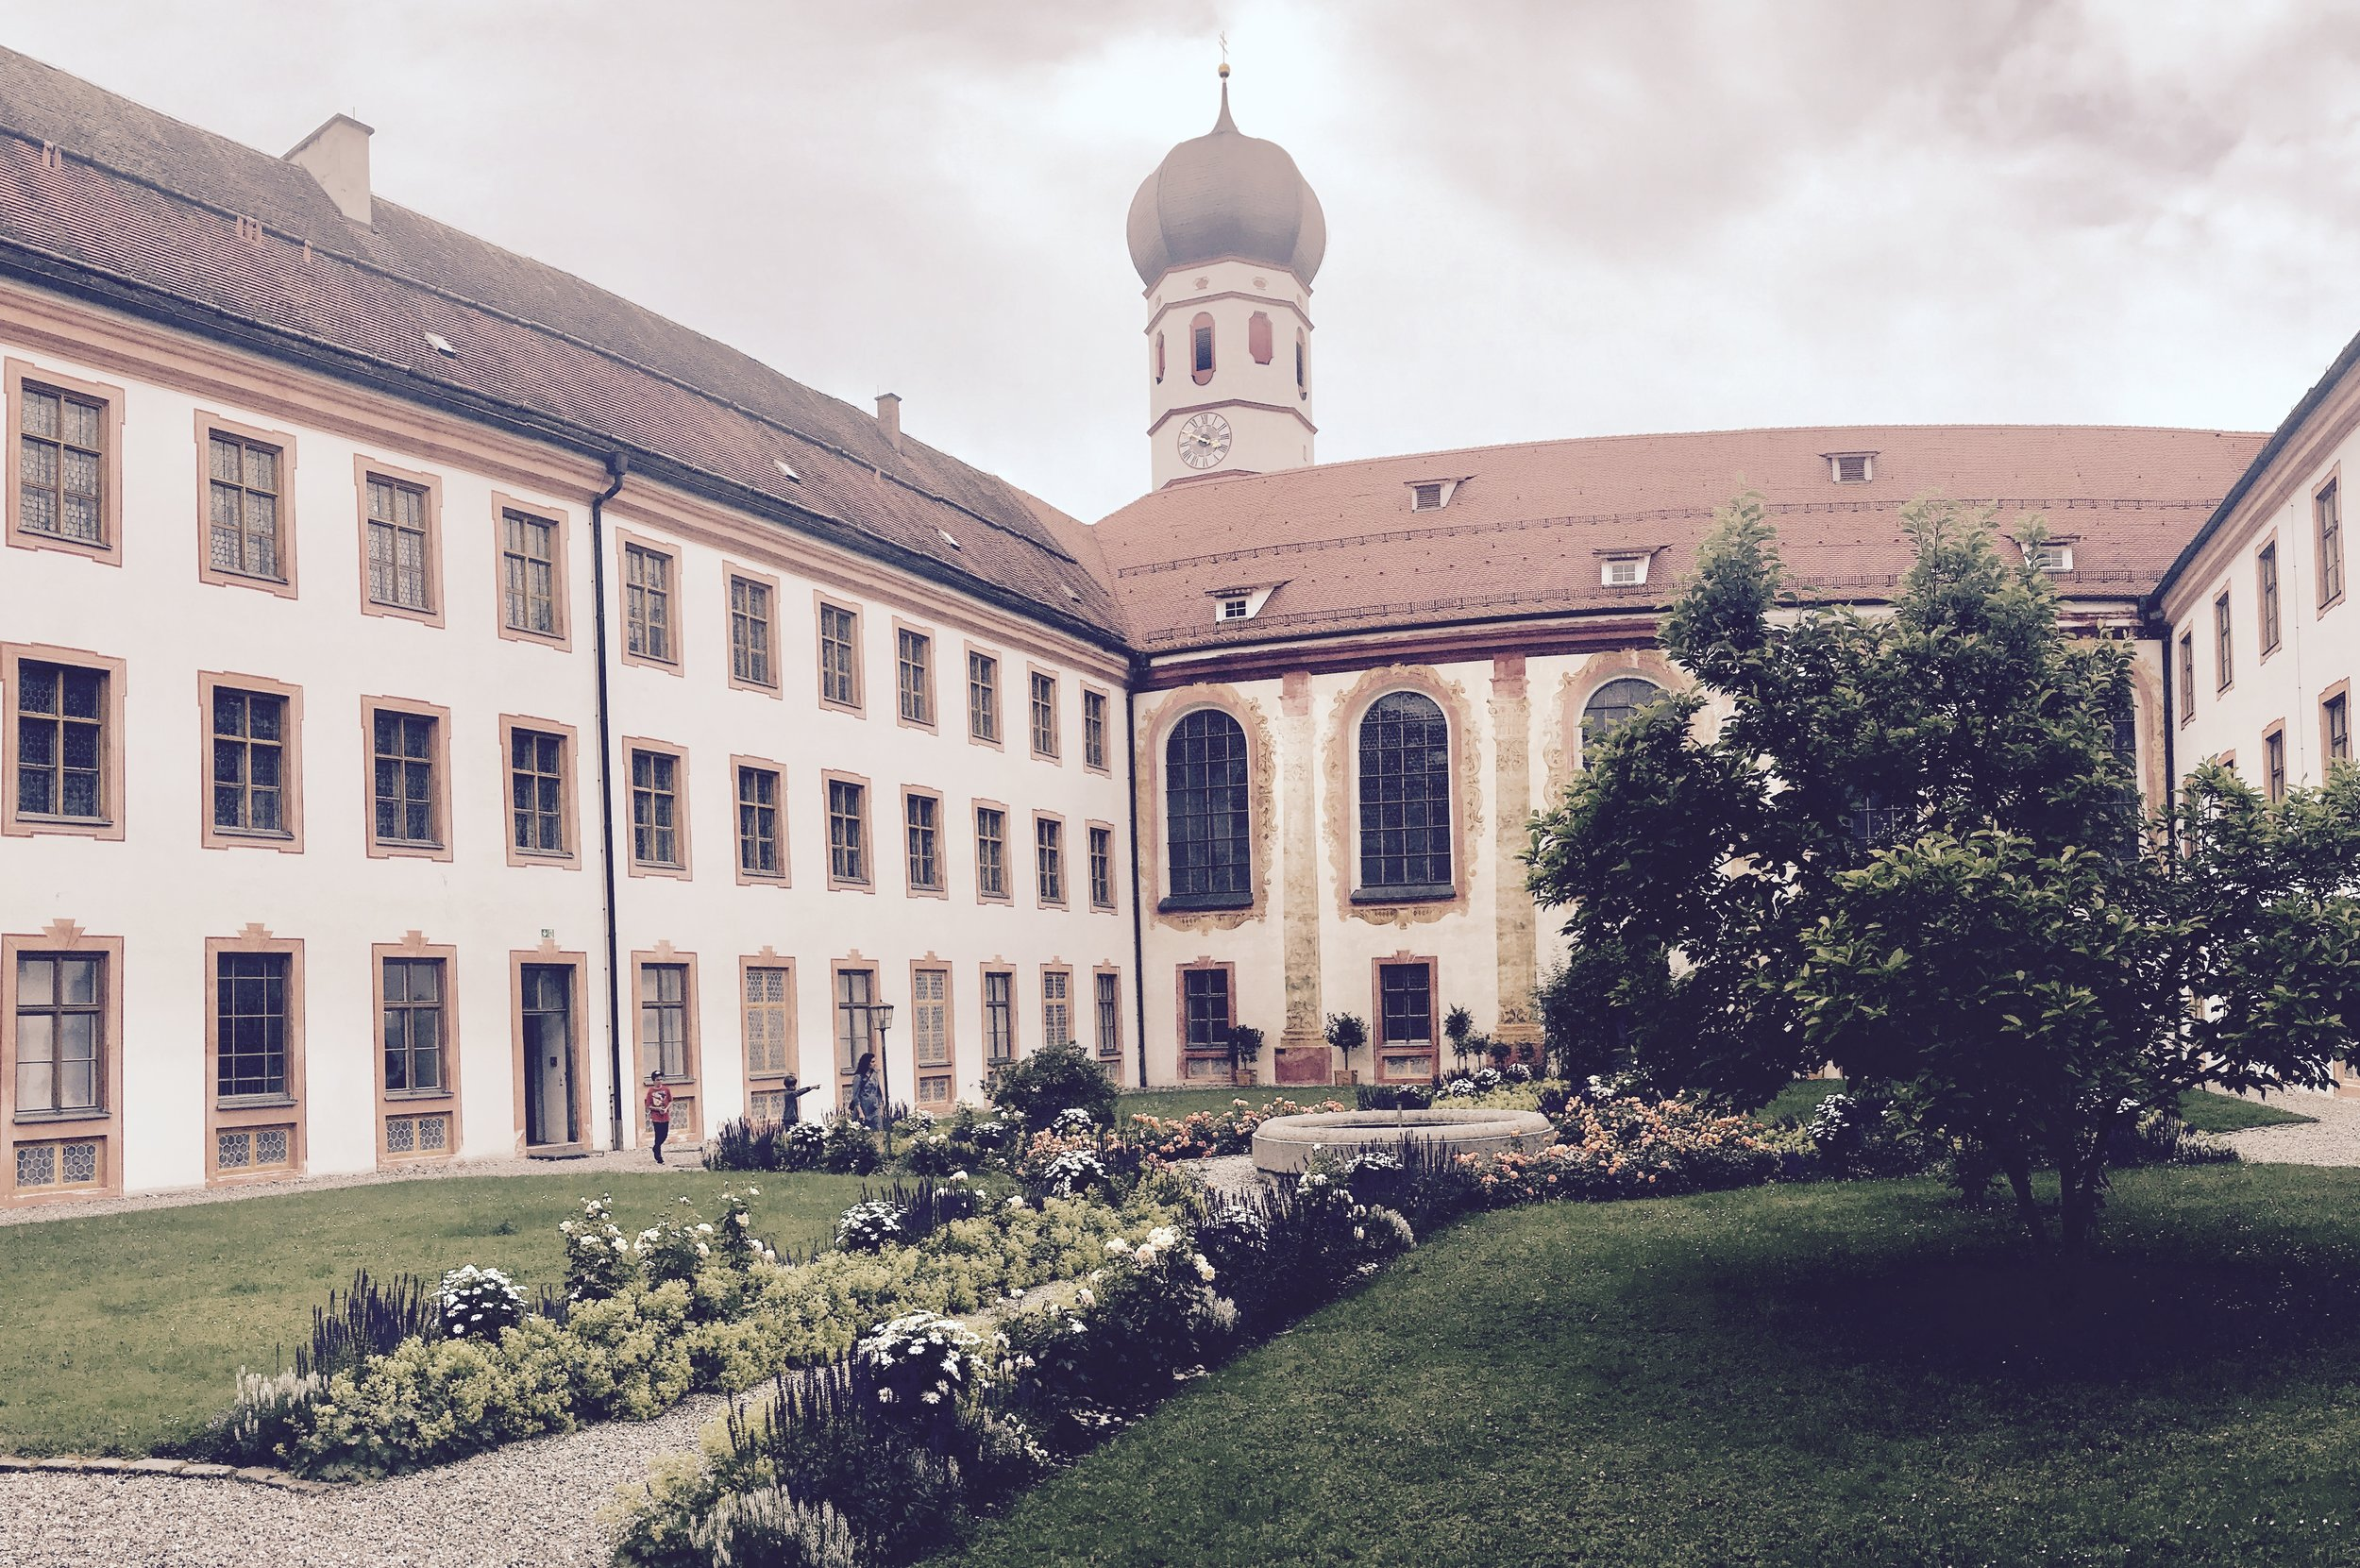 The central courtyard of the abbey